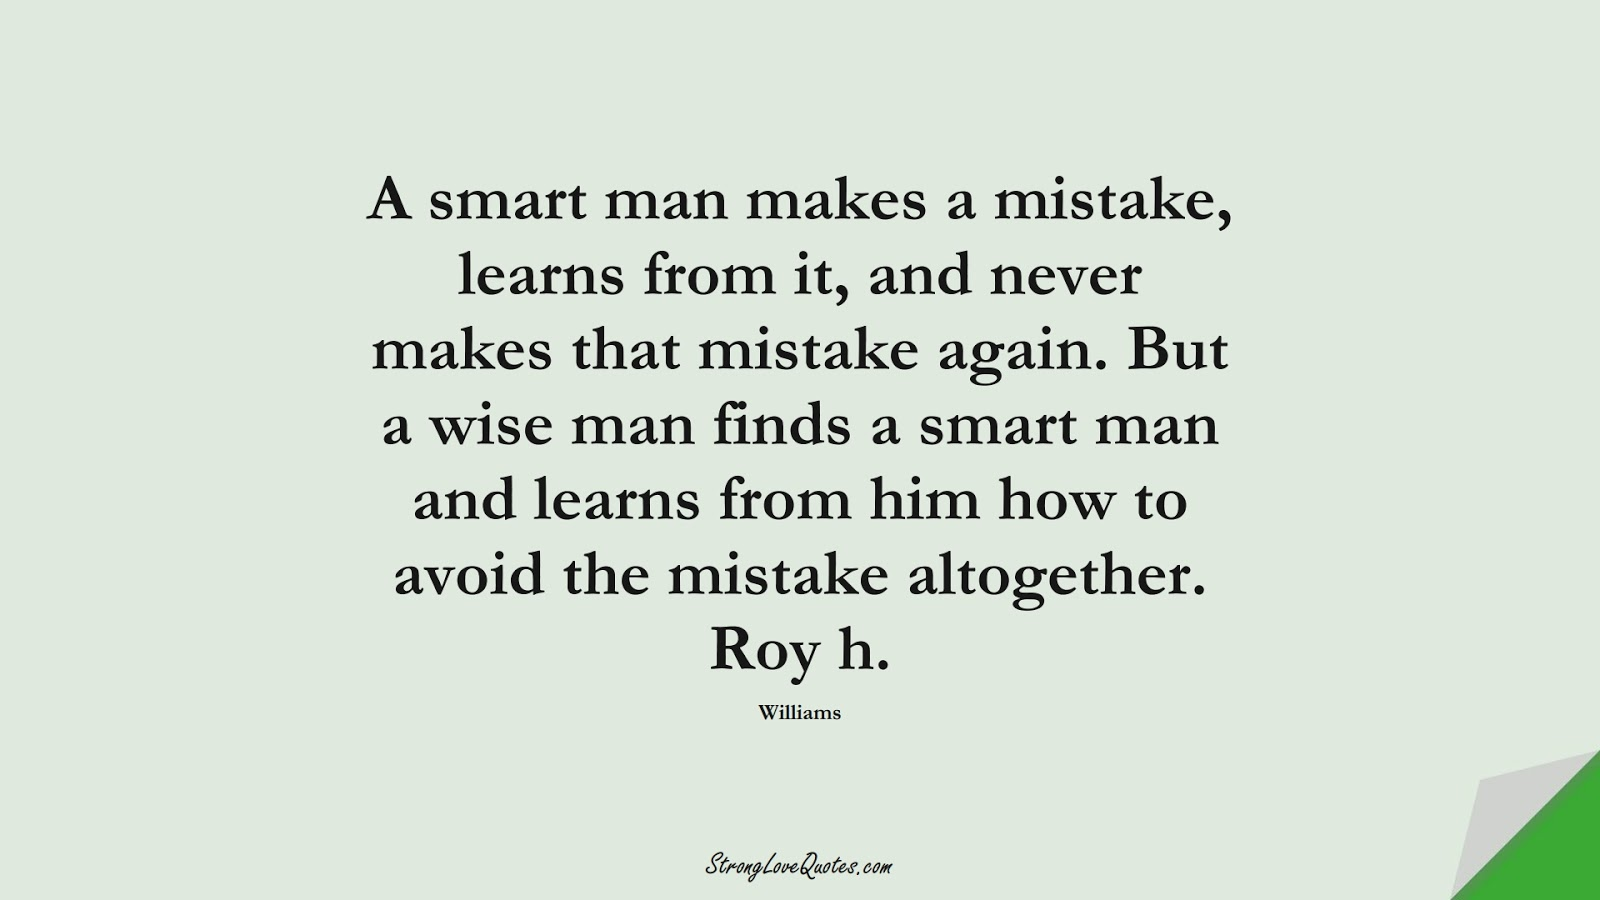 A smart man makes a mistake, learns from it, and never makes that mistake again. But a wise man finds a smart man and learns from him how to avoid the mistake altogether. Roy h. (Williams);  #EducationQuotes